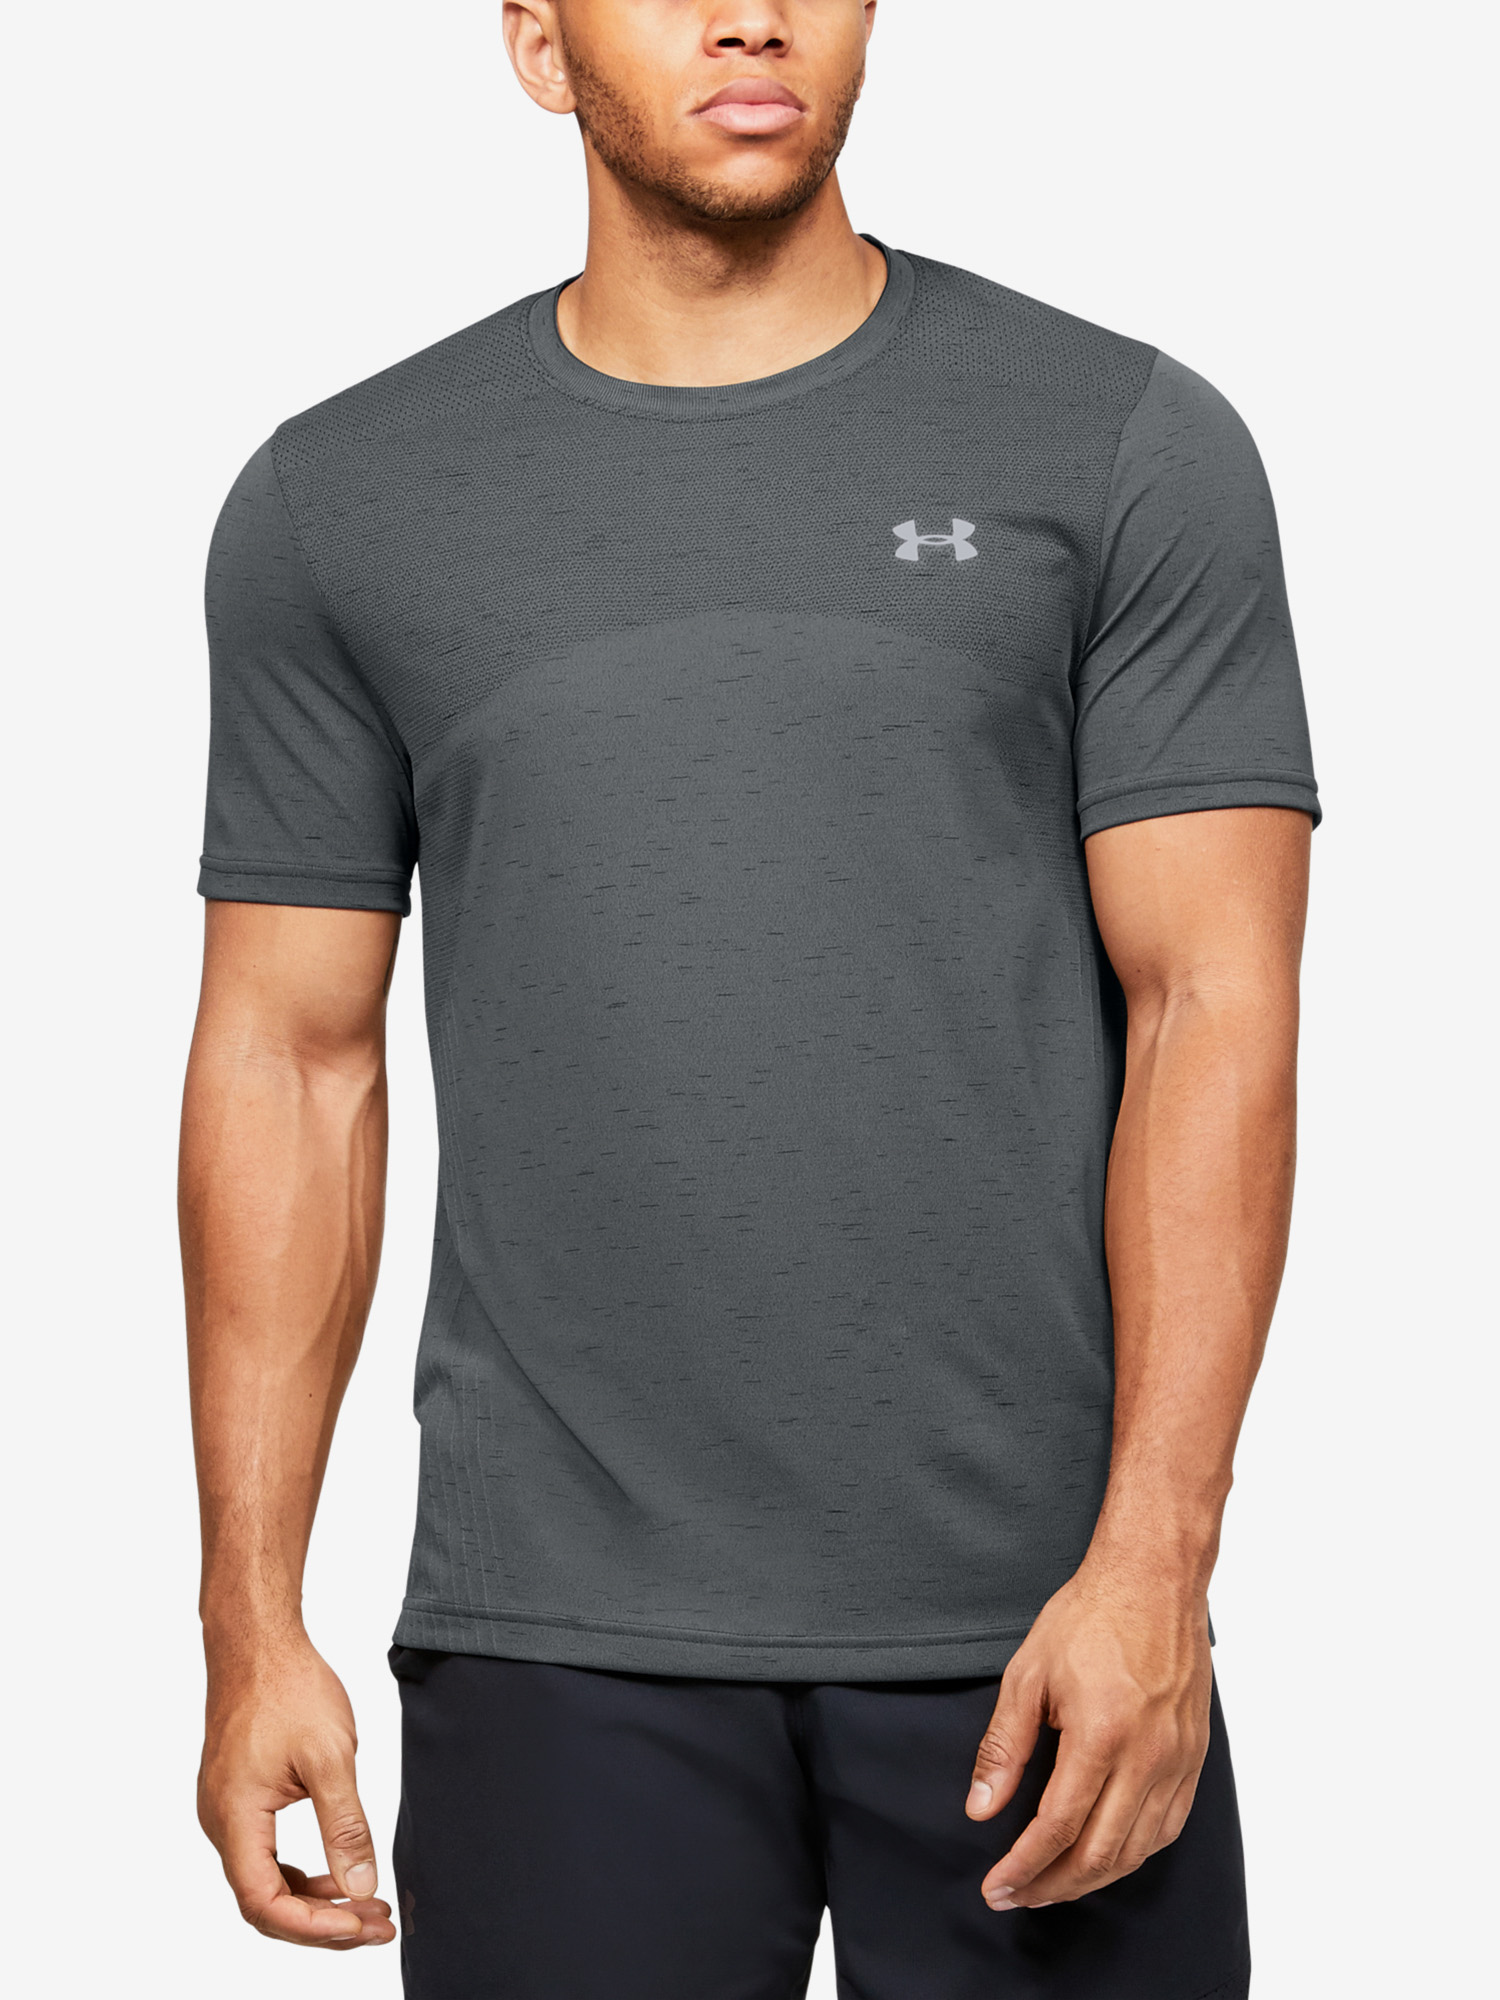 Tričko Under Armour Seamless Ss (1)